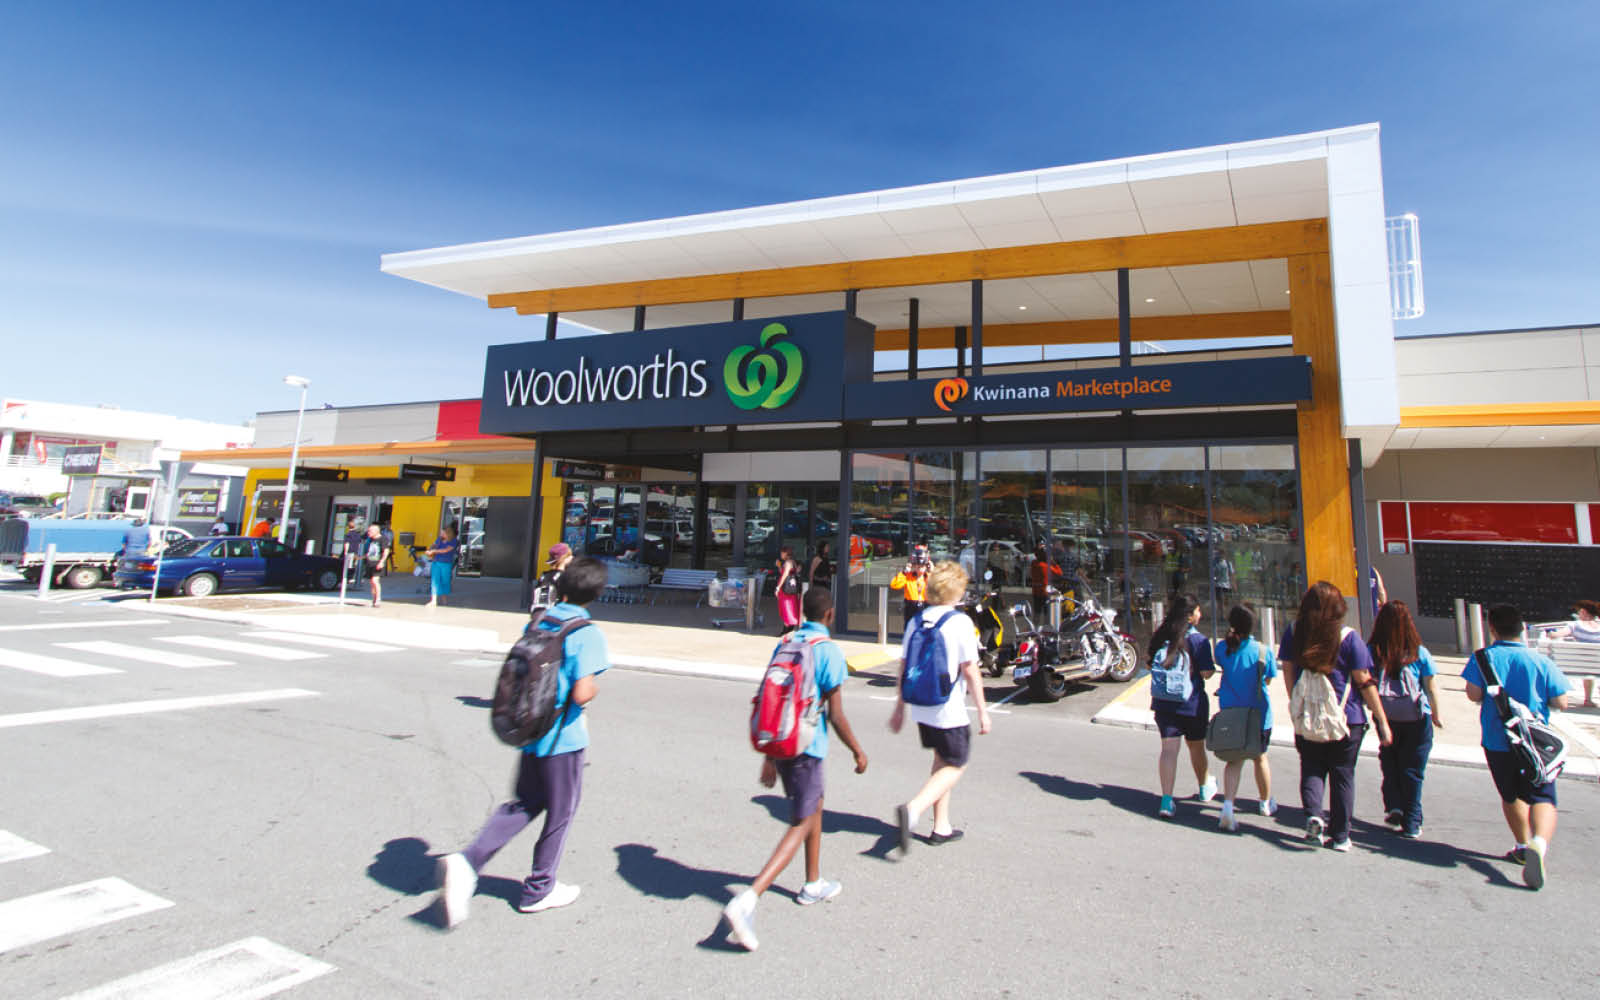 Woolworths Kwinana Marketplace